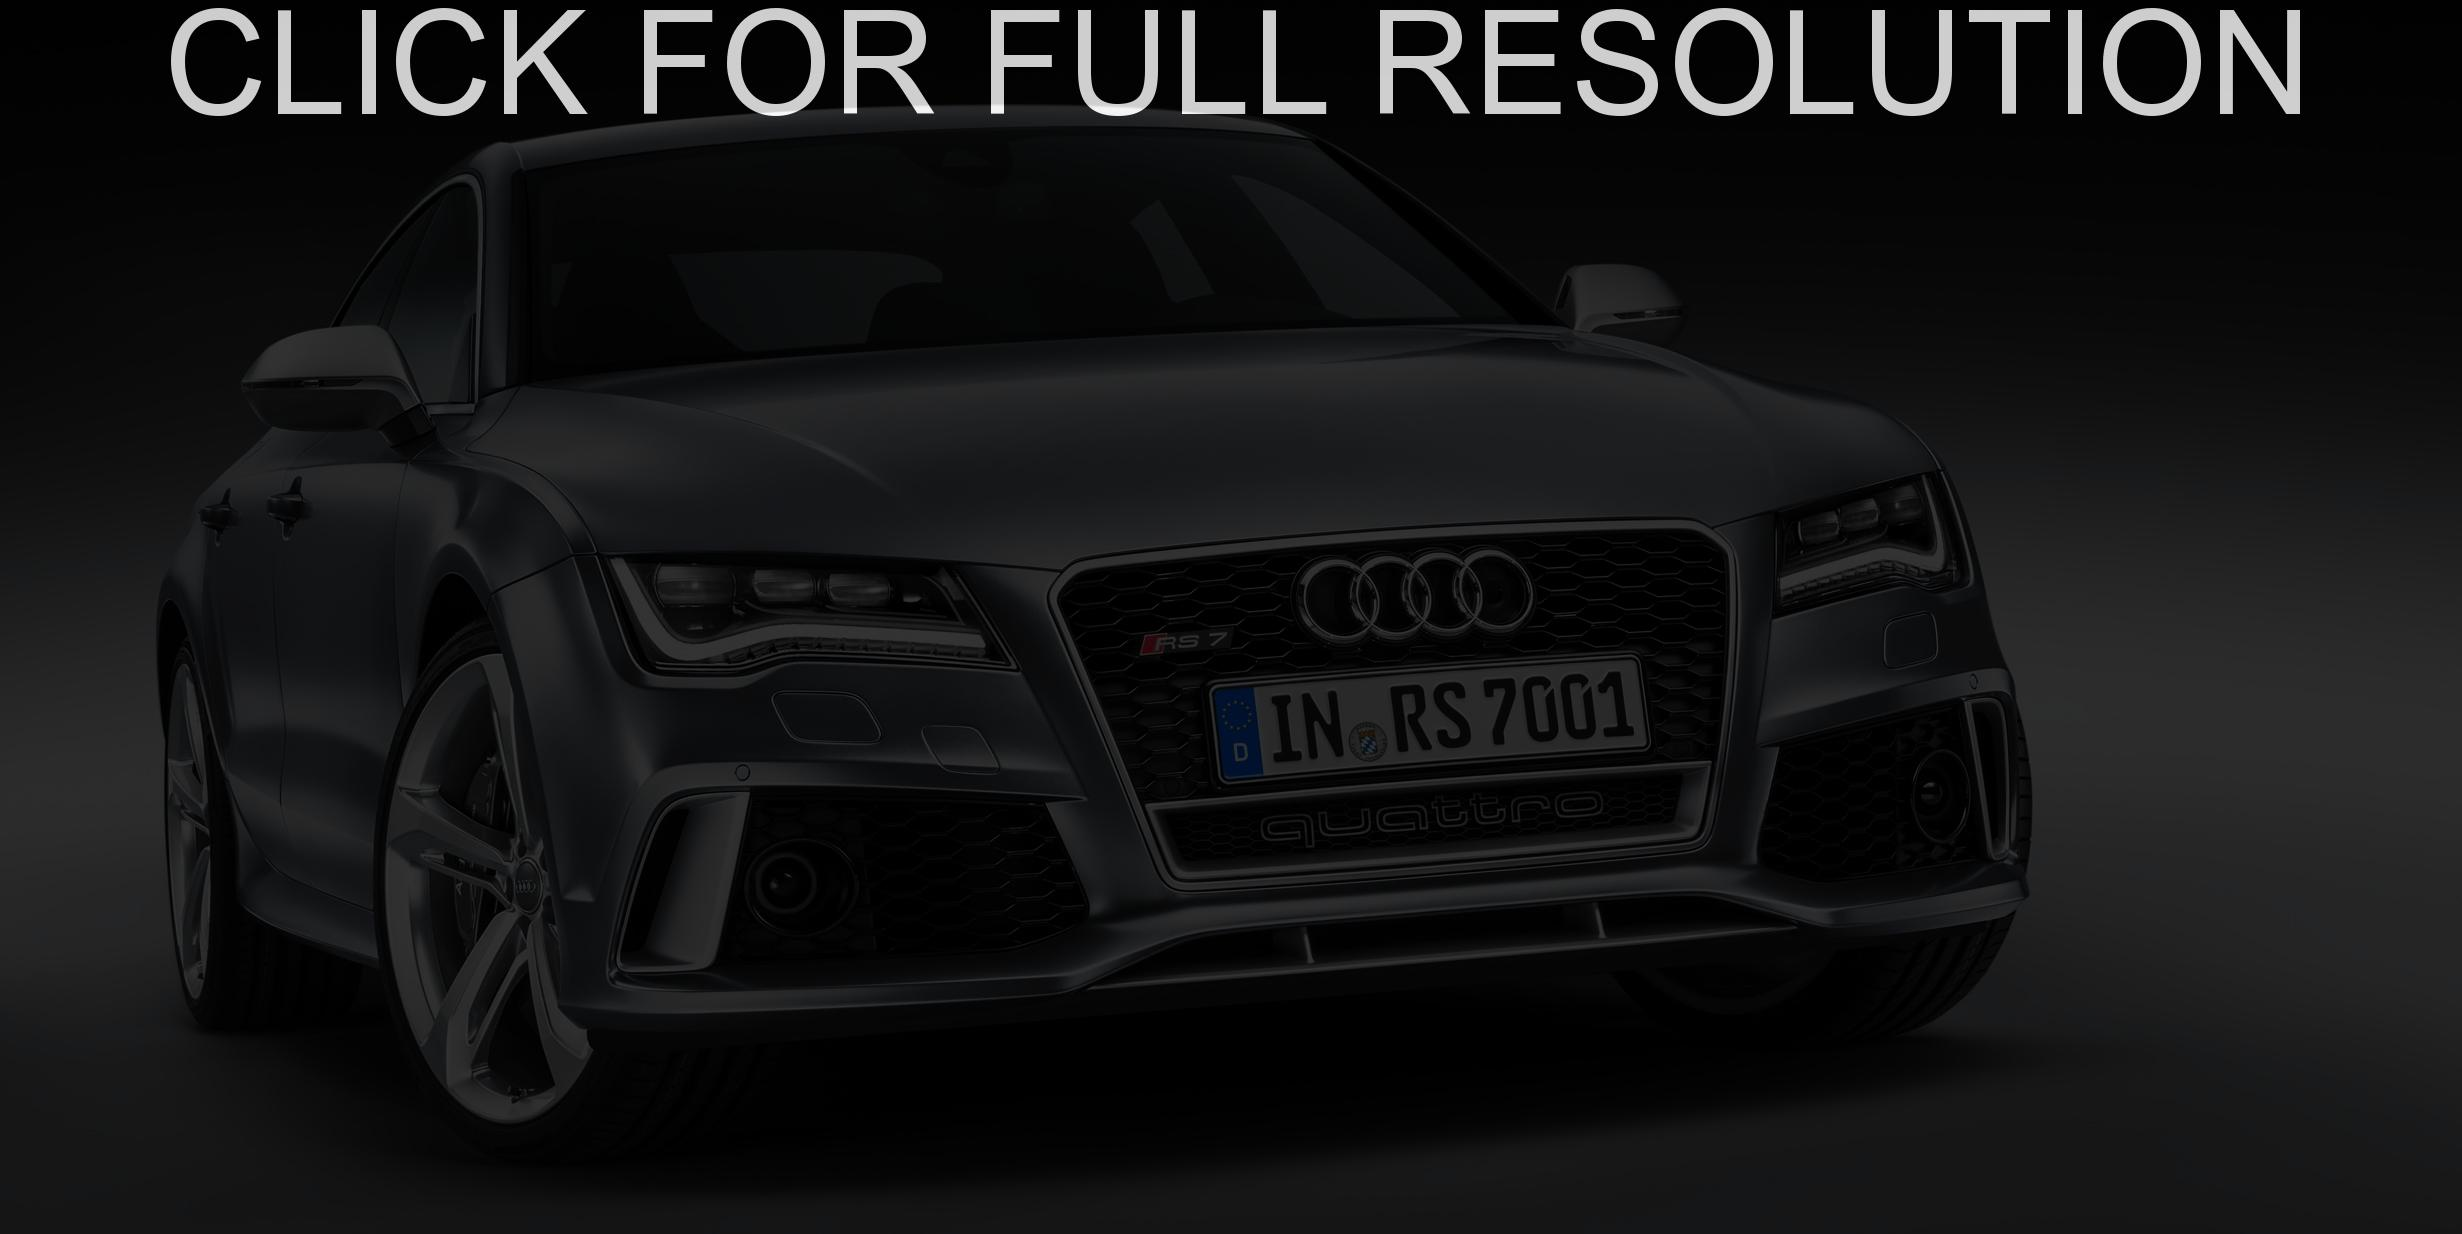 rs7 – Car Wallpapers For The Android,Iphone 6 ,Samsung S5 ,Desktop ,Mobile 13 Wallpaper